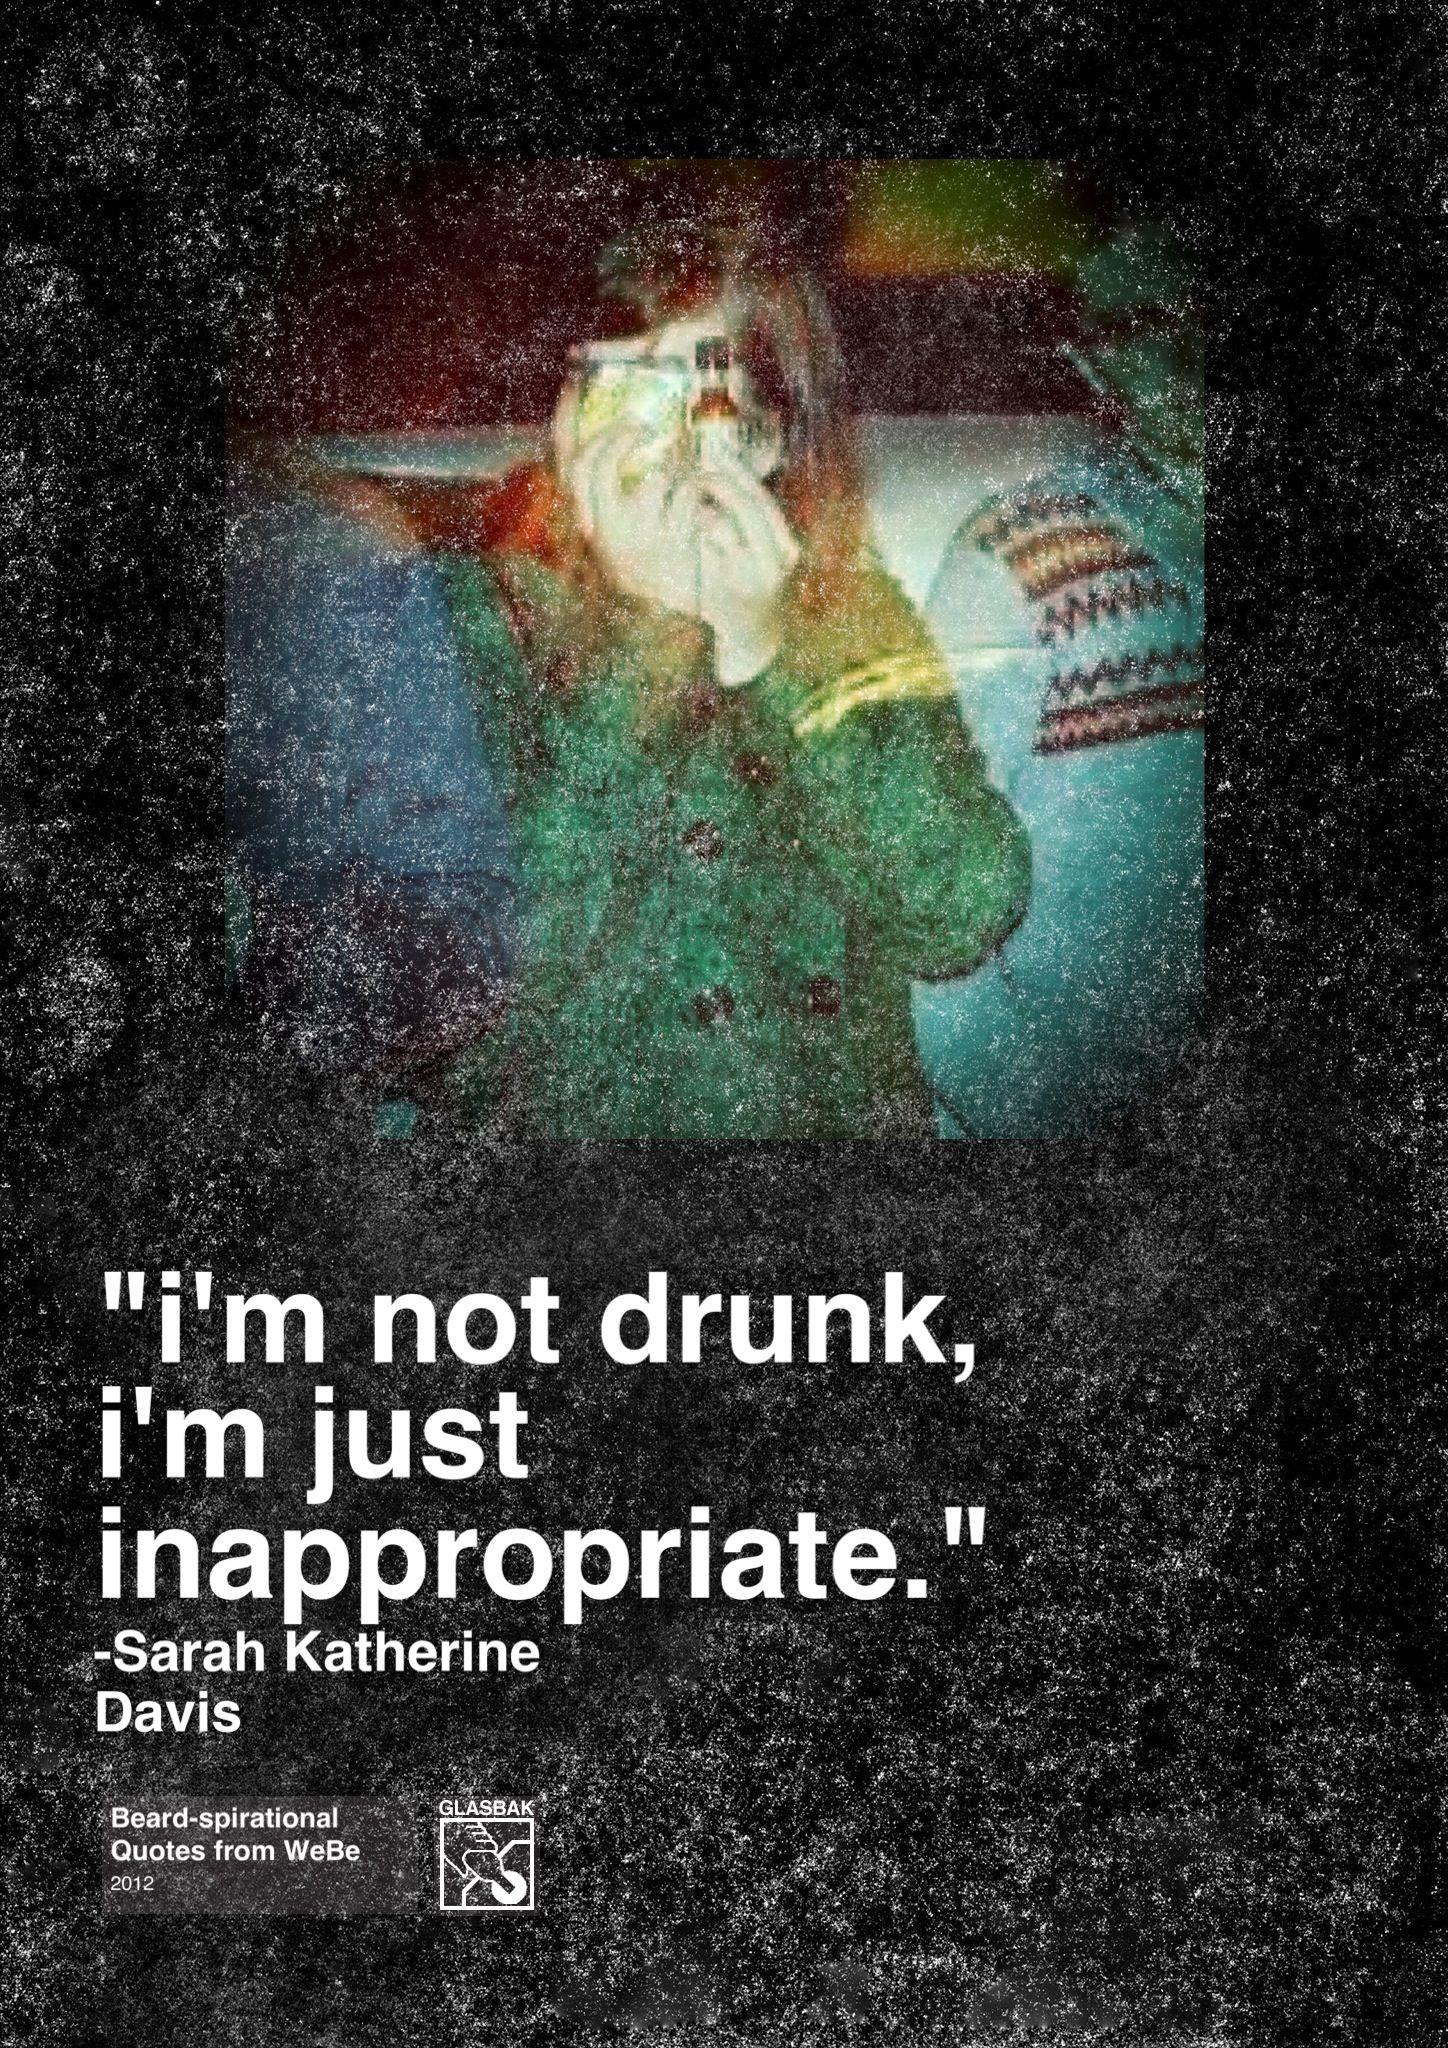 2012-12-29_I'm Not Drunk I'm Just Inappropriate.jpg